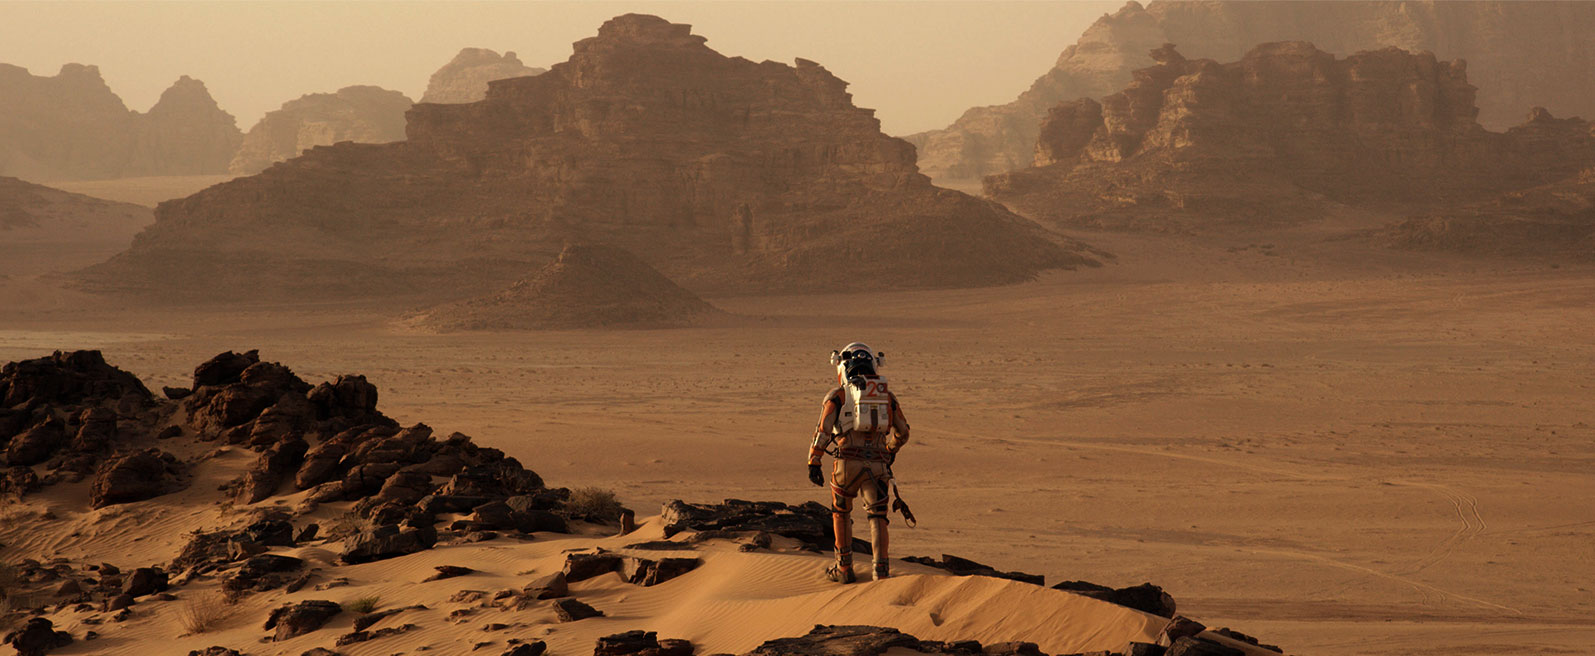 the martian book review pic 04 by casey carlisle